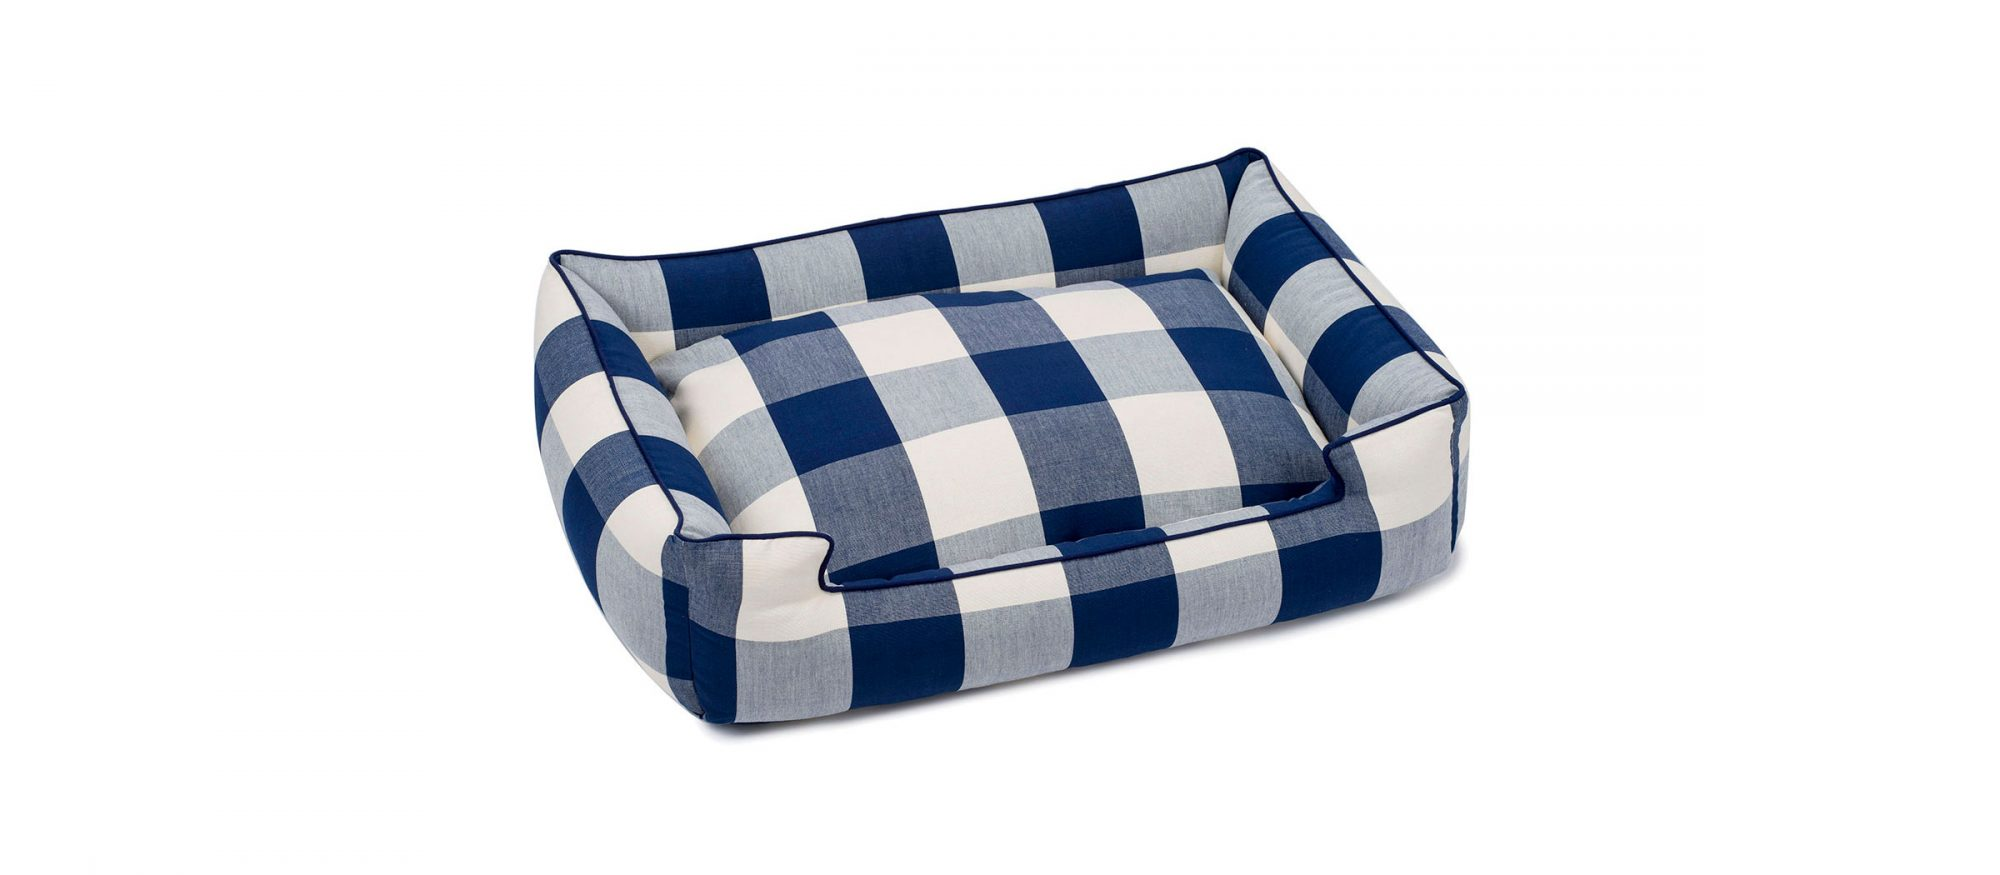 Buffalo Check Navy Lounge Bed from Jax and Bones